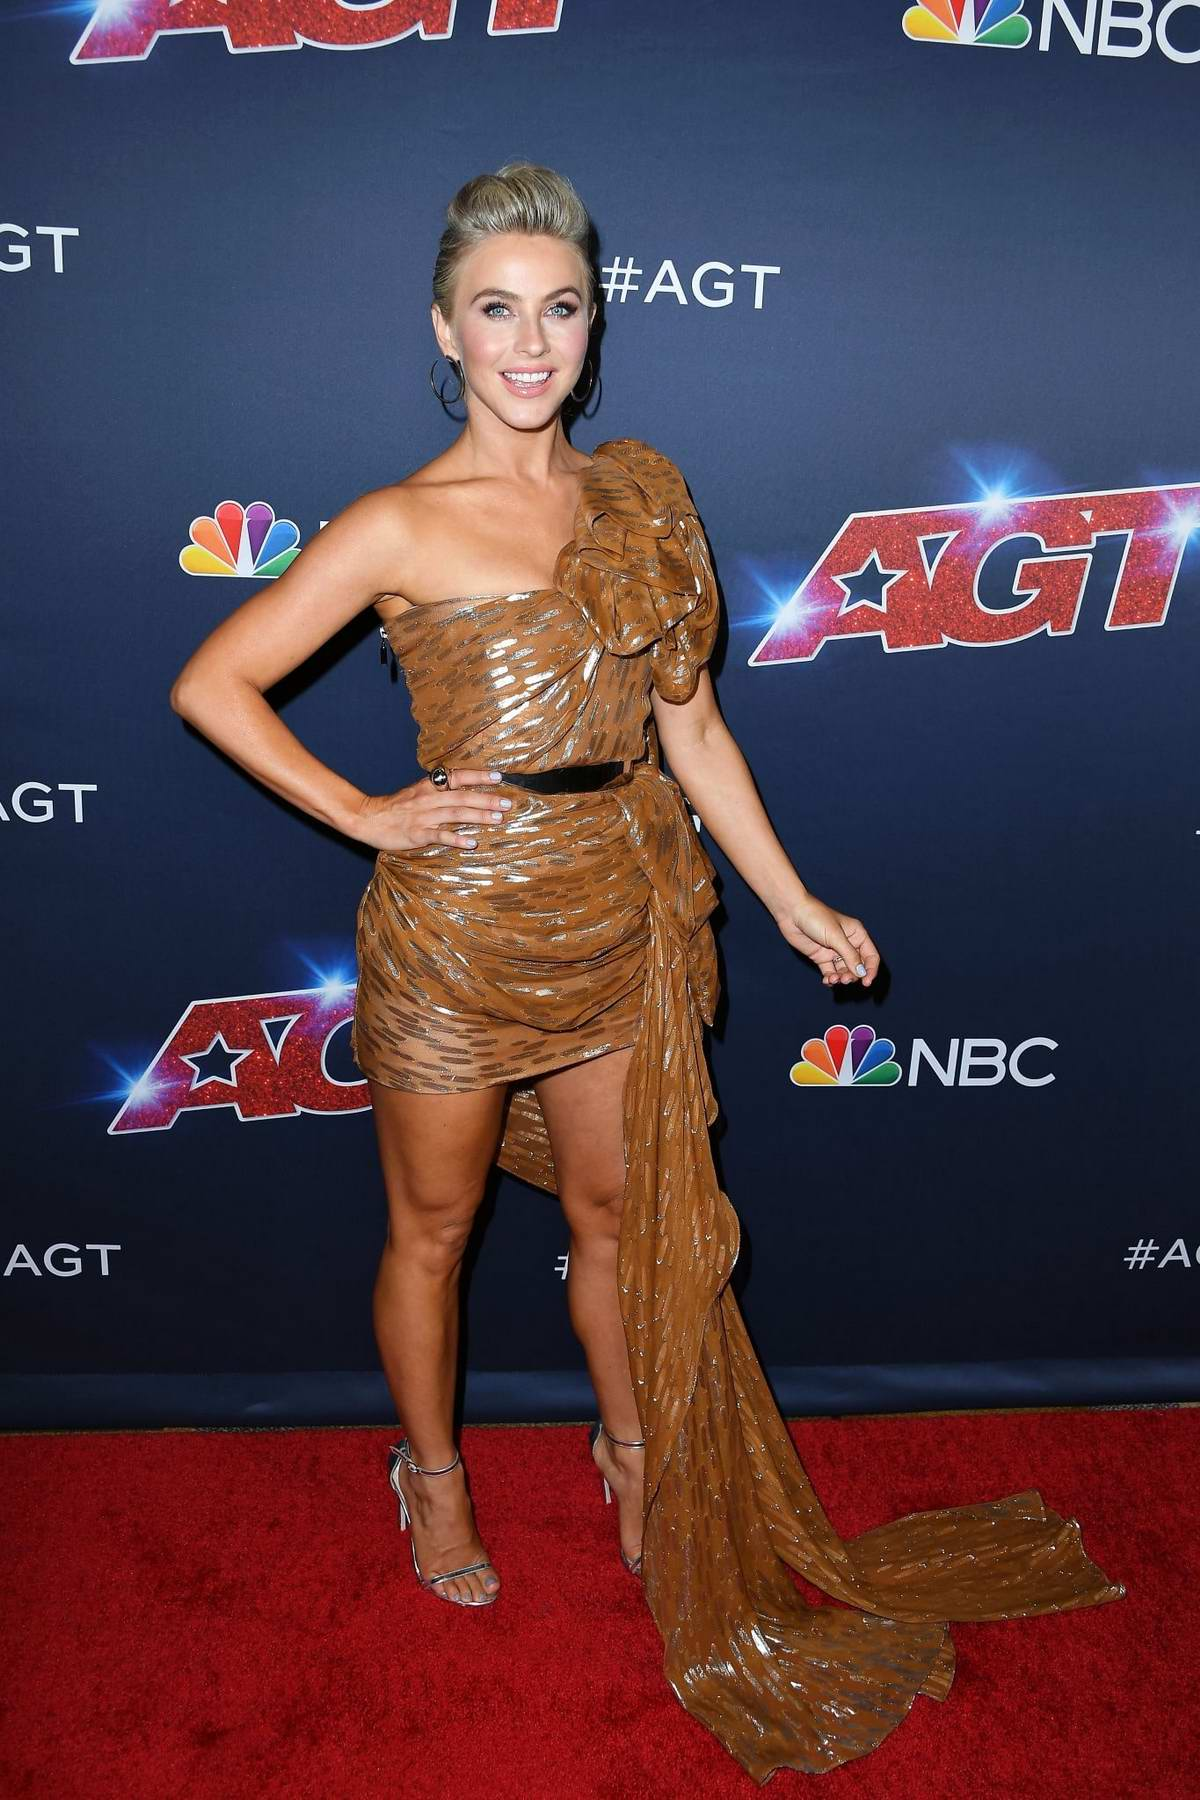 Julianne Hough attends the 'America's Got Talent' Season 14 Live Show at Dolby Theatre in Hollywood, California